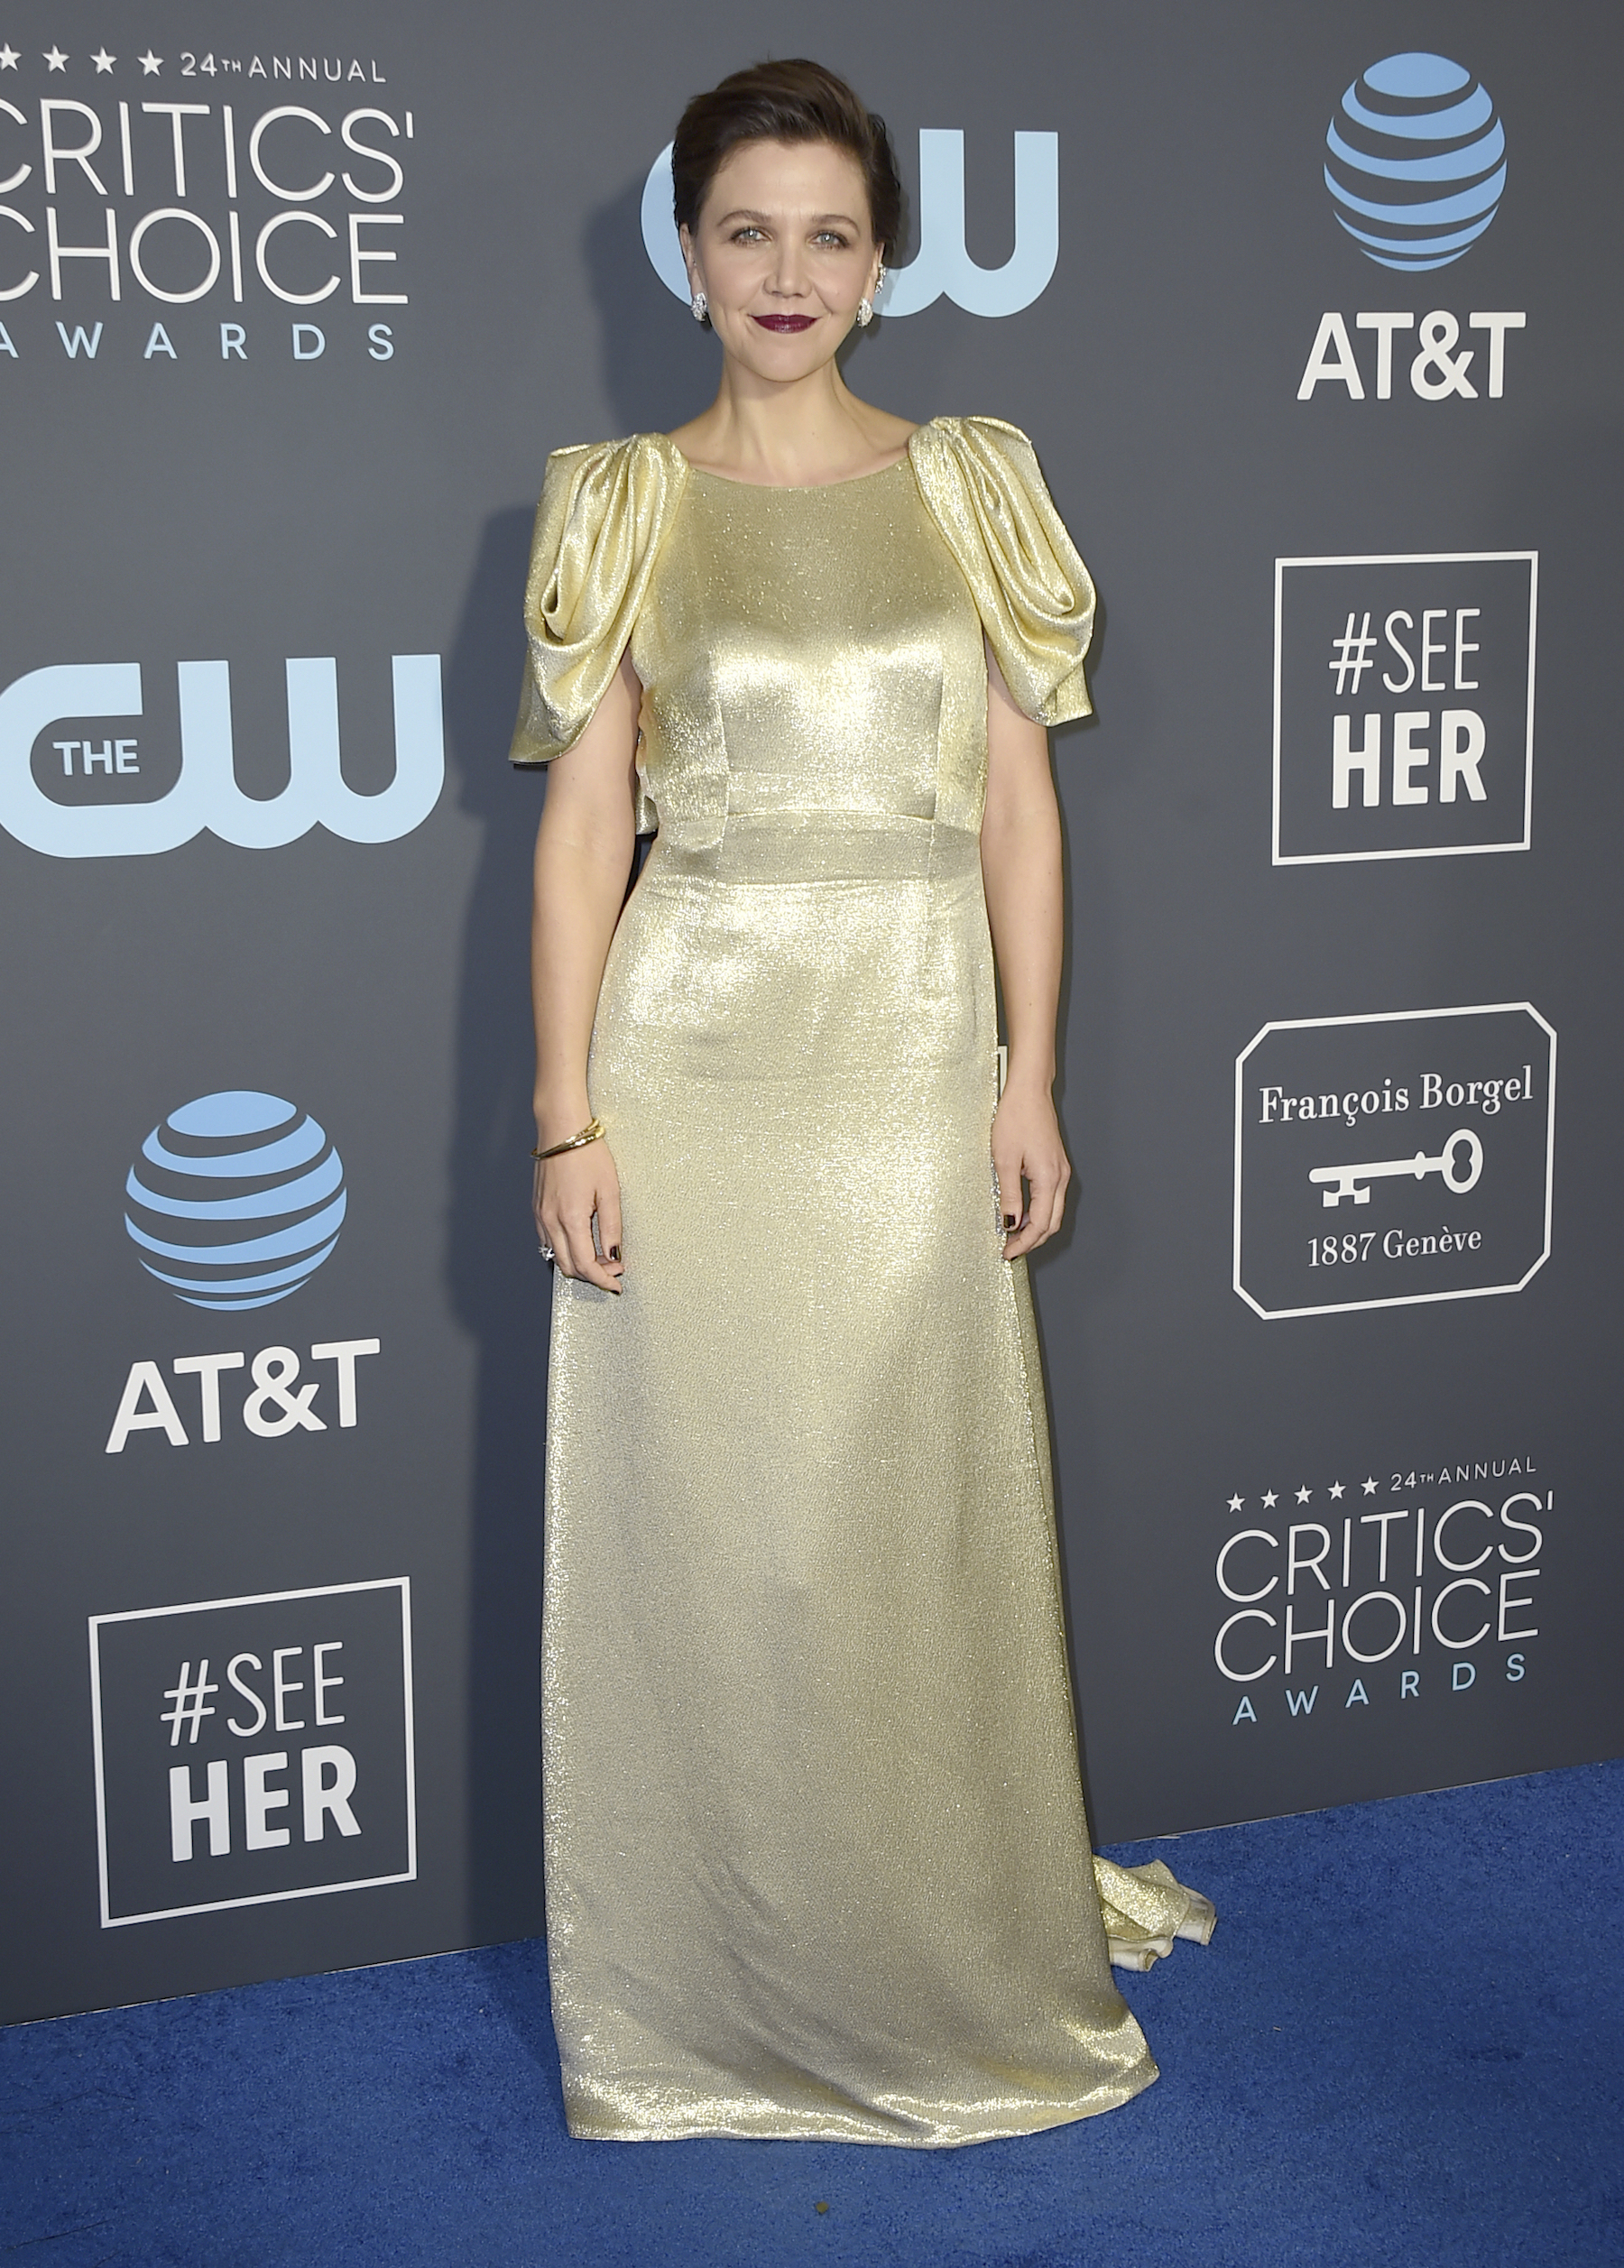 <div class='meta'><div class='origin-logo' data-origin='AP'></div><span class='caption-text' data-credit='Jordan Strauss/Invision/AP'>Maggie Gyllenhaal arrives at the 24th annual Critics' Choice Awards on Sunday, Jan. 13, 2019, at the Barker Hangar in Santa Monica, Calif.</span></div>